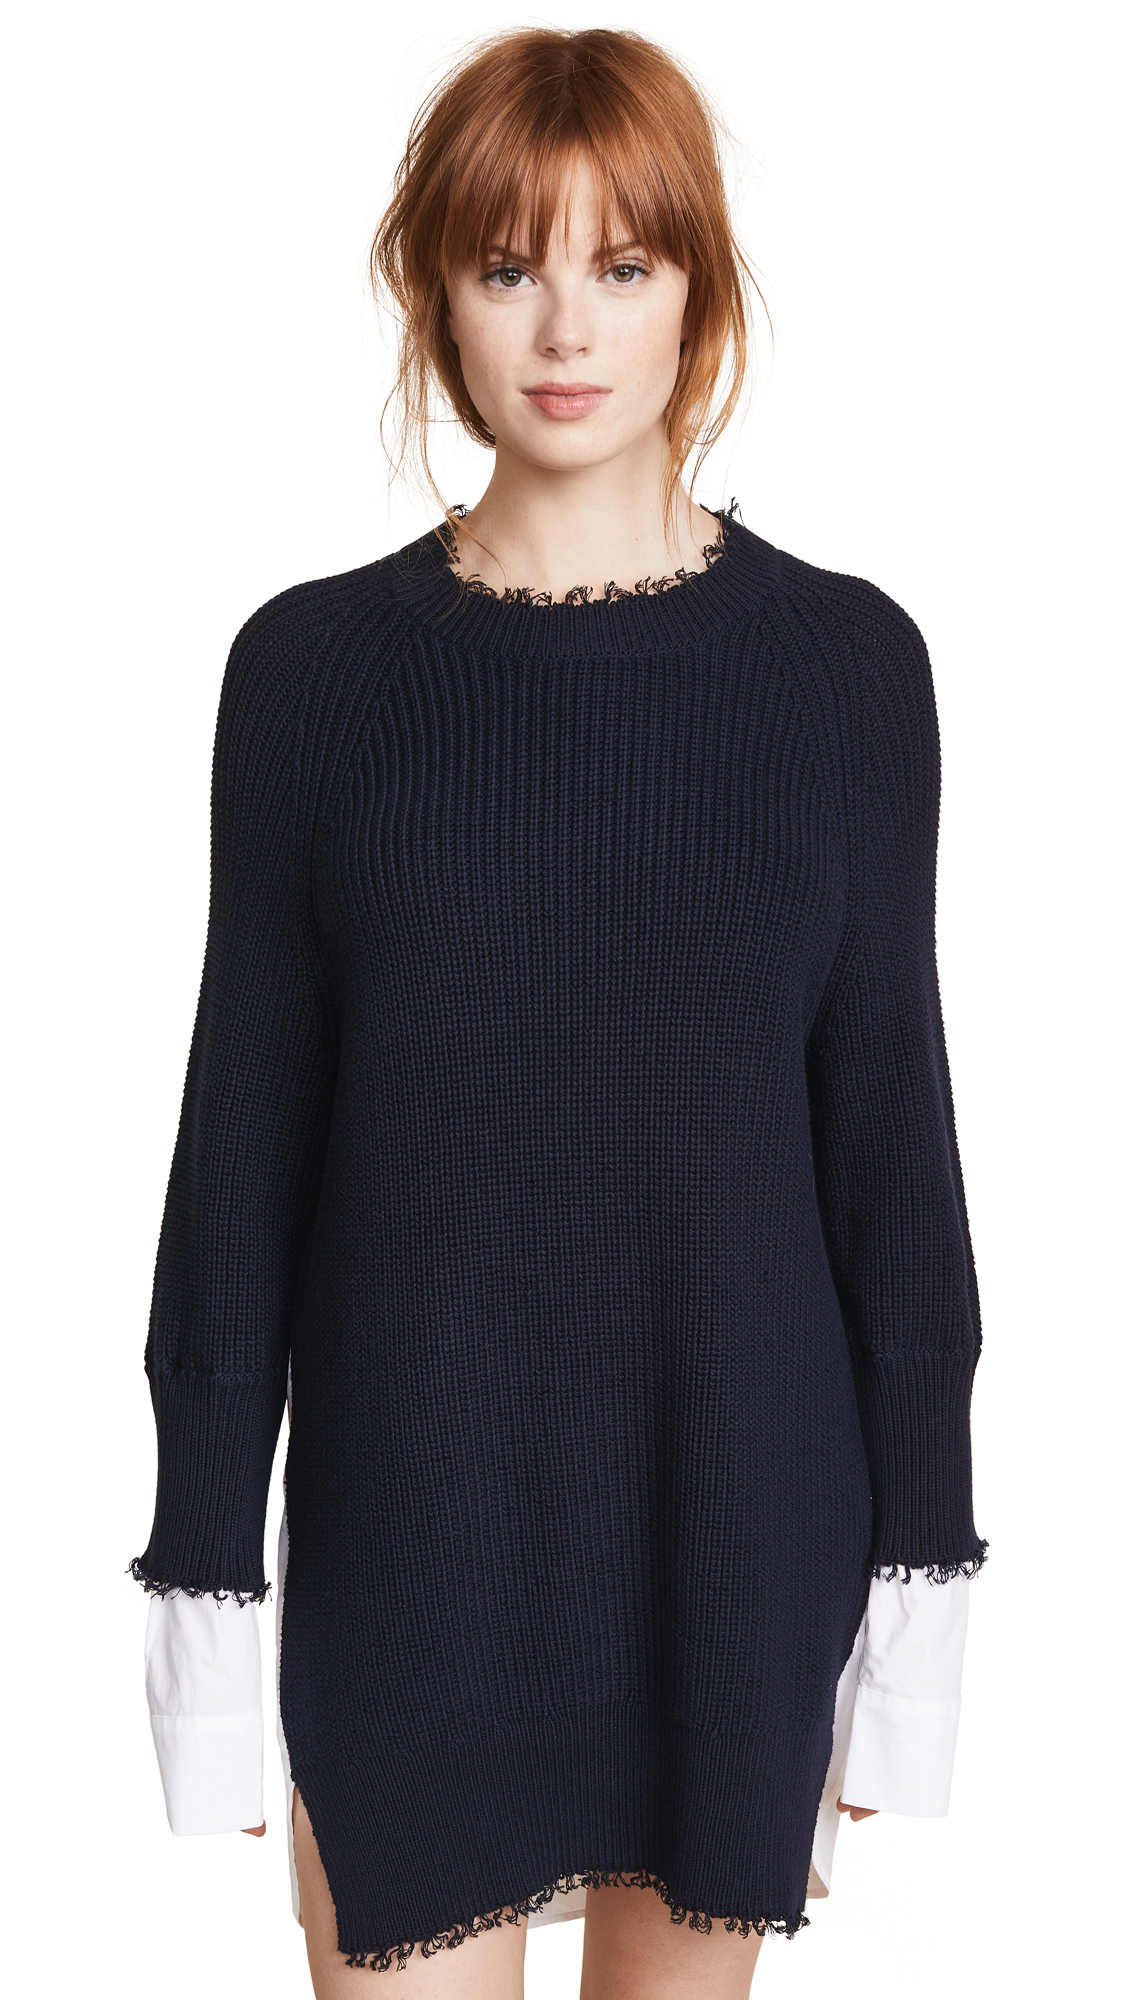 T by Alexander Wang Hybrid Varsity Sweater Dress In Navy/White